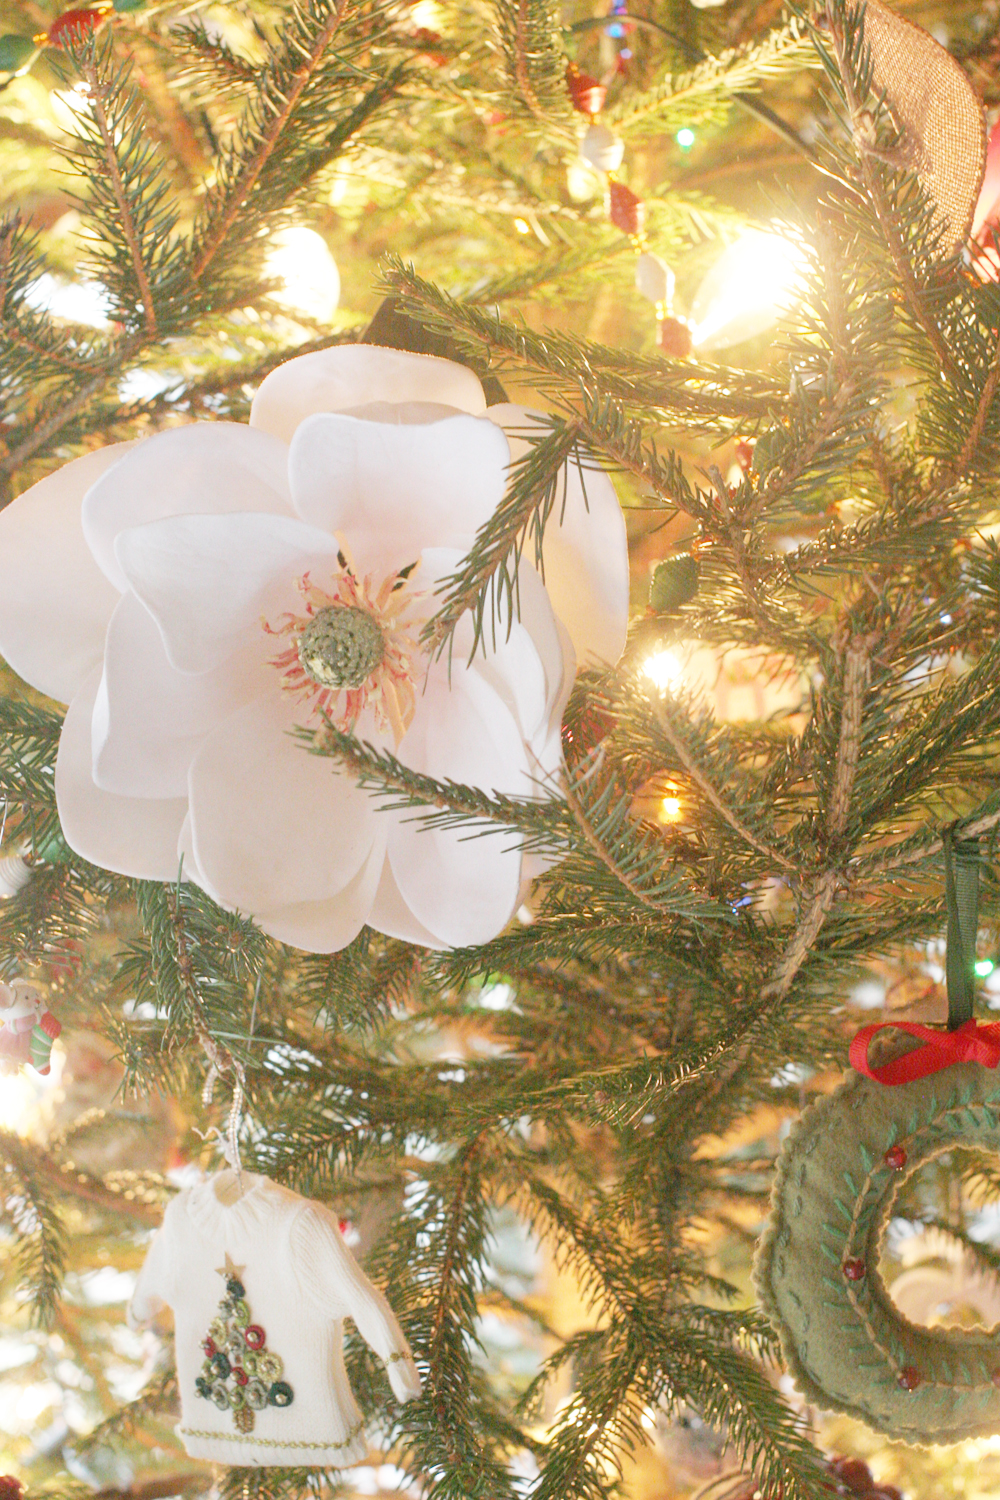 Magnolia Blooms in a Christmas Tree, Farmhouse Christmas Home Tour, Rustic, Cottage by @CraftivityD